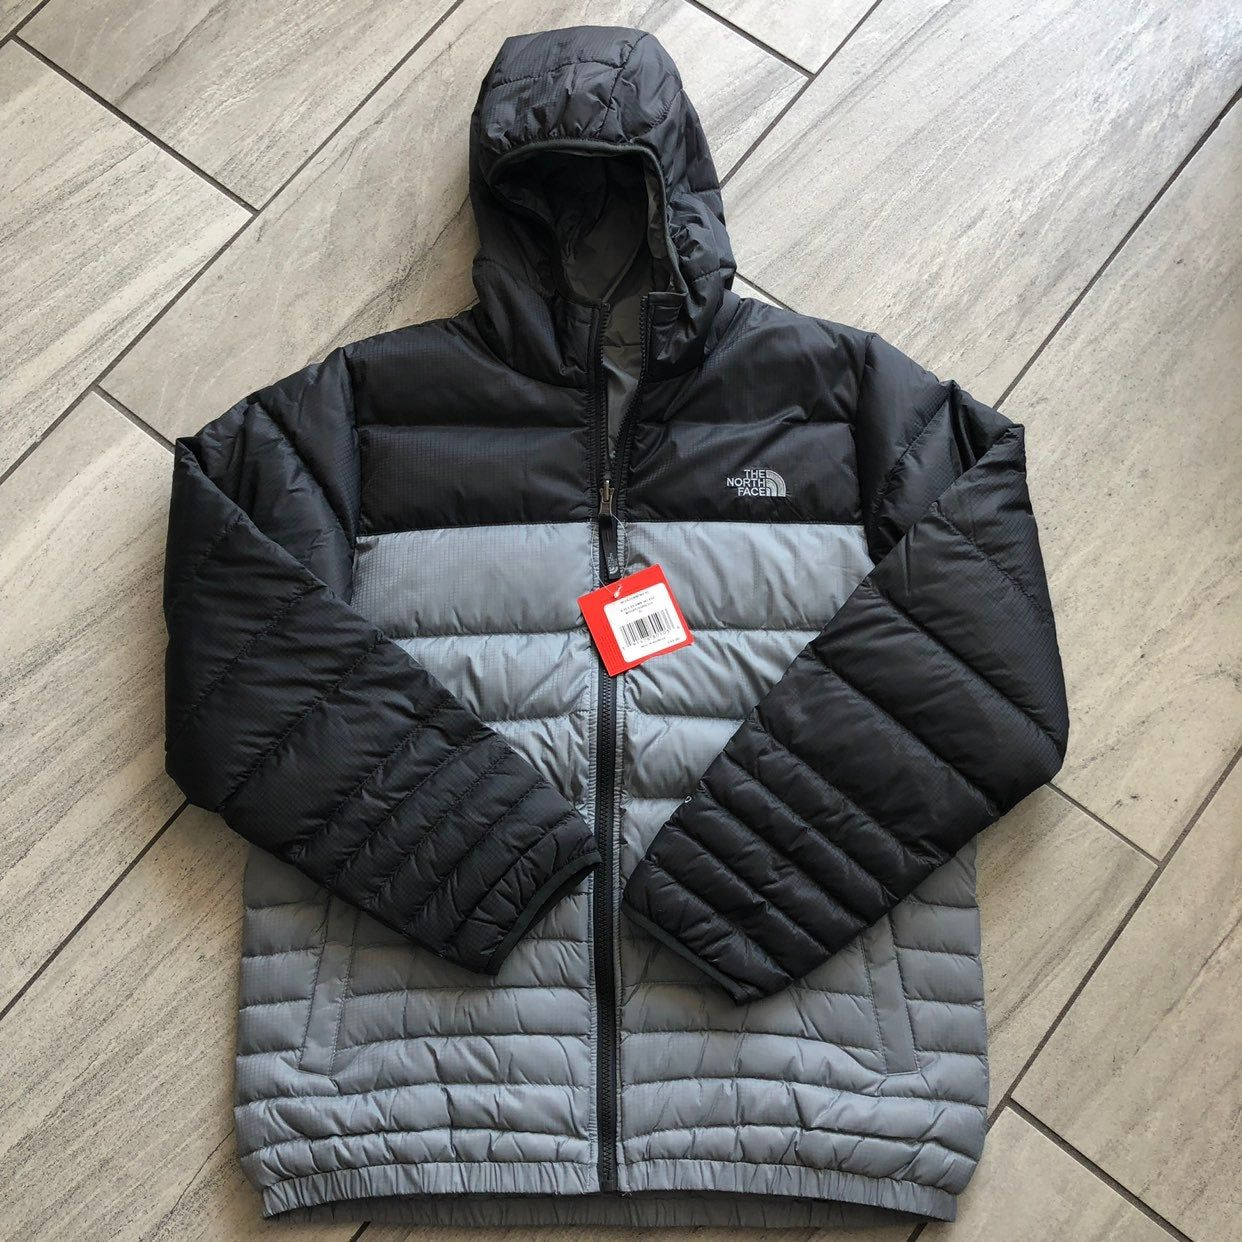 The North Face Boys Reversible Down Hooded Jacket Xl 18 20 21 3 4 From Armpit To Armpit Length 27 5 New With Tags R North Face Coat Jackets The North Face [ 1242 x 1242 Pixel ]